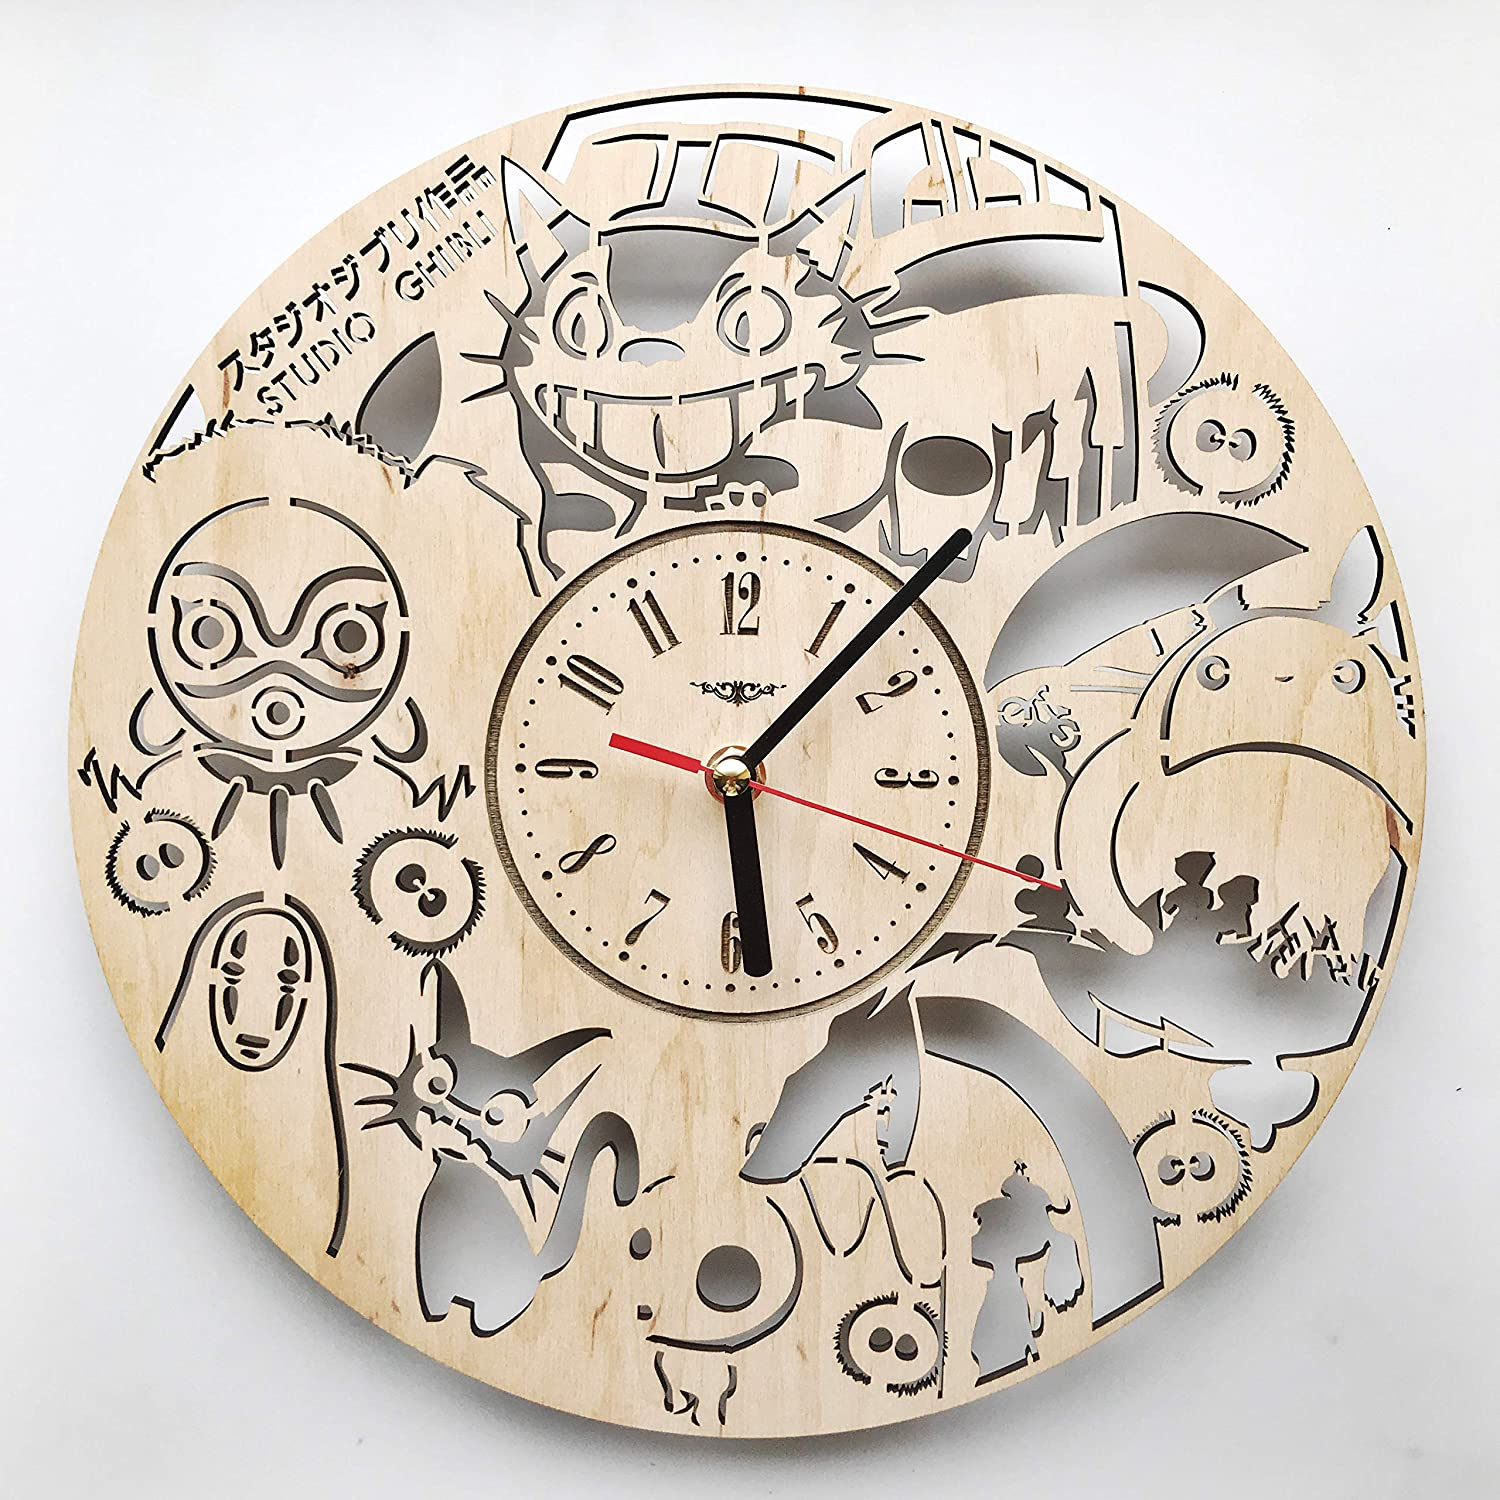 Studio Ghibli Wall Clock Wood Home Decor - Great Wall Art for Living Room Bedroom Kitchen for Men Women Kids Girlfriend Boyfriend - Silent Quartz Mechanism - 12 Inches